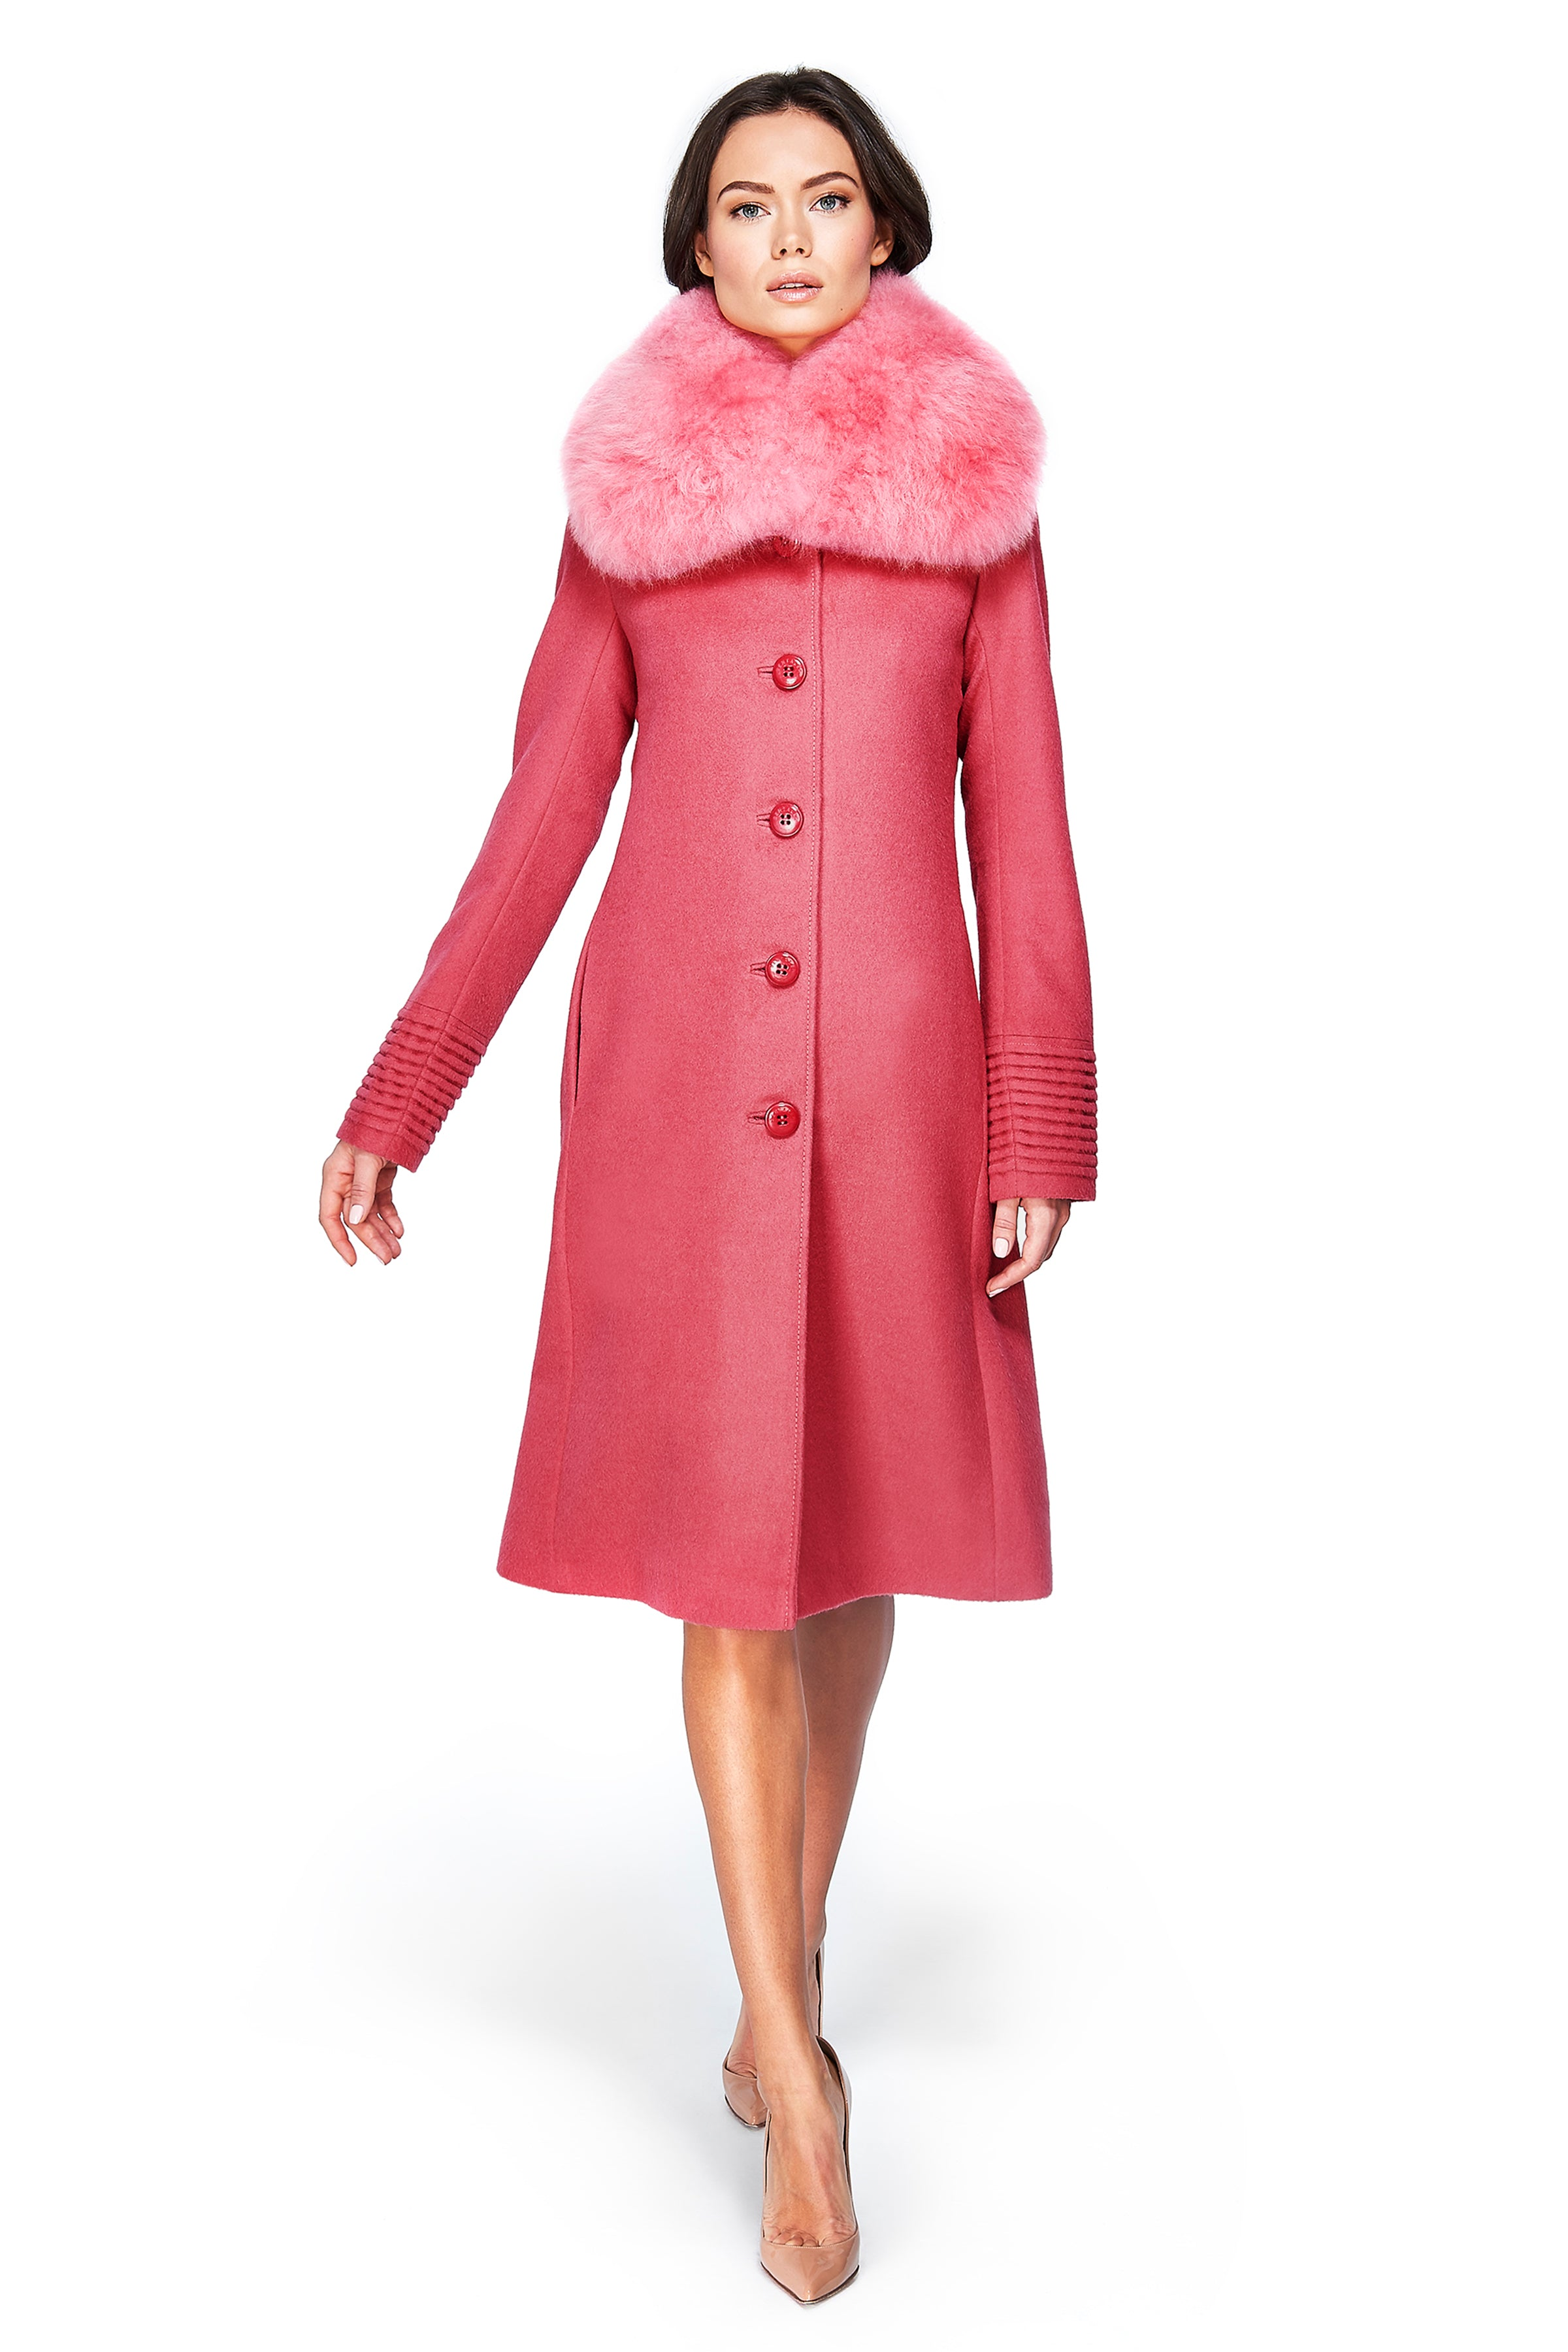 Fitted Coat with Buttons and Fur Collar Tourmaline Pink